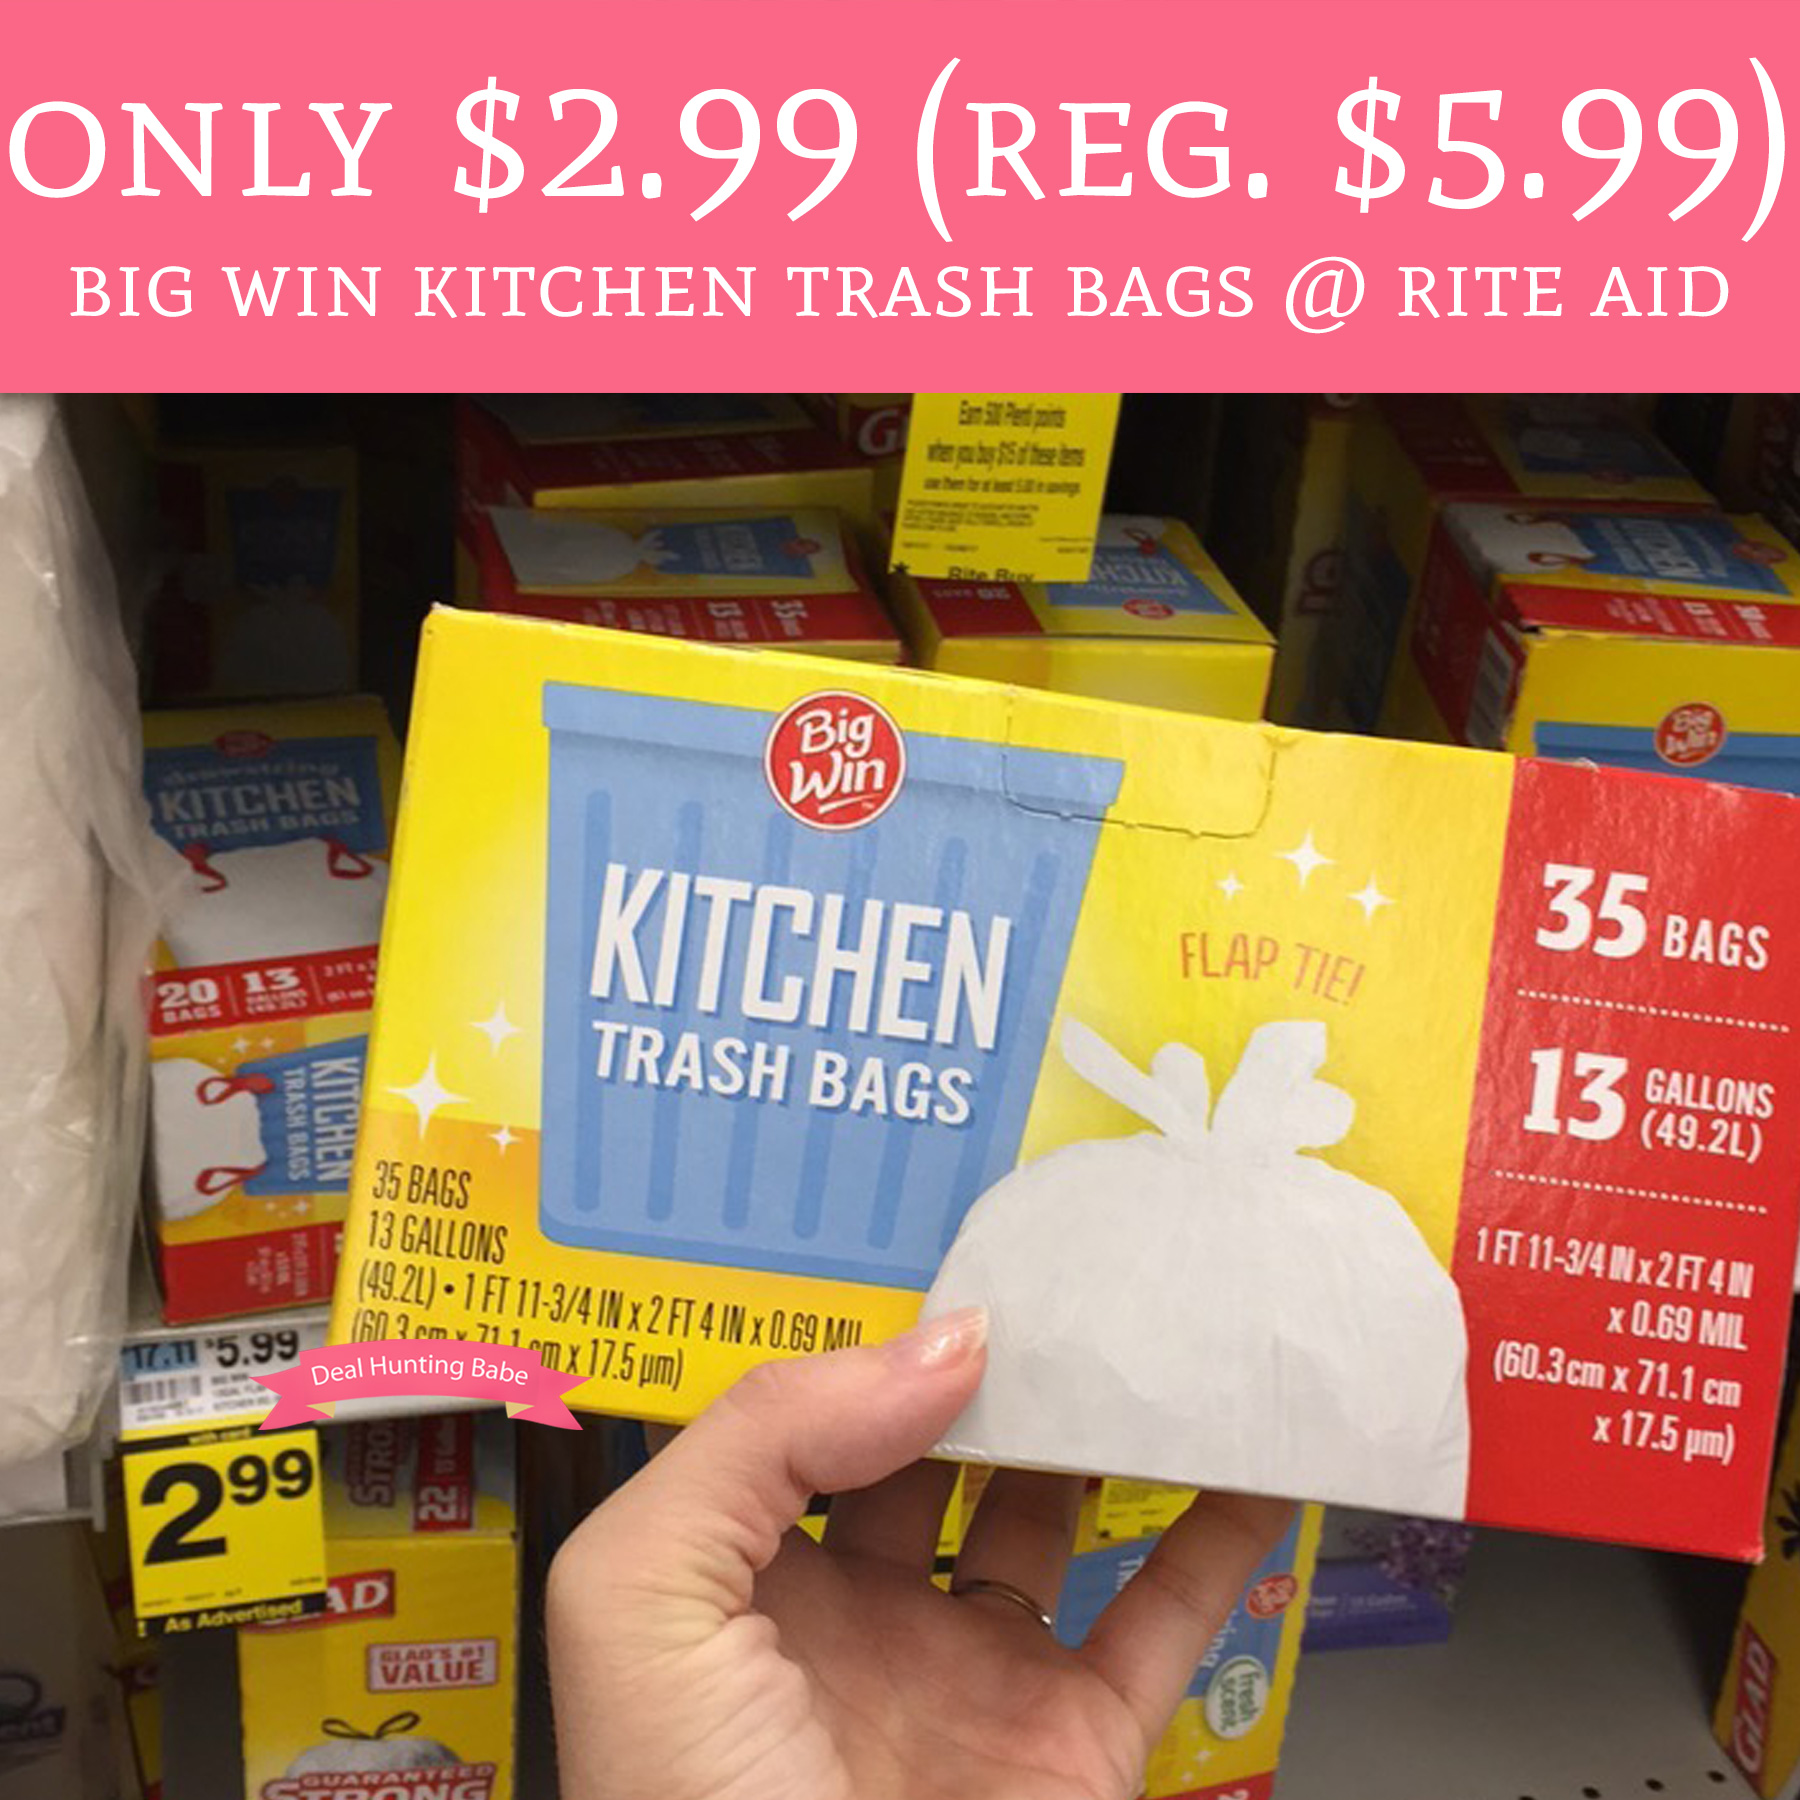 Rite Aid Stock Quote: Only $2.99 (Regular $5.99) Big Wing Kitchen Trash Bags